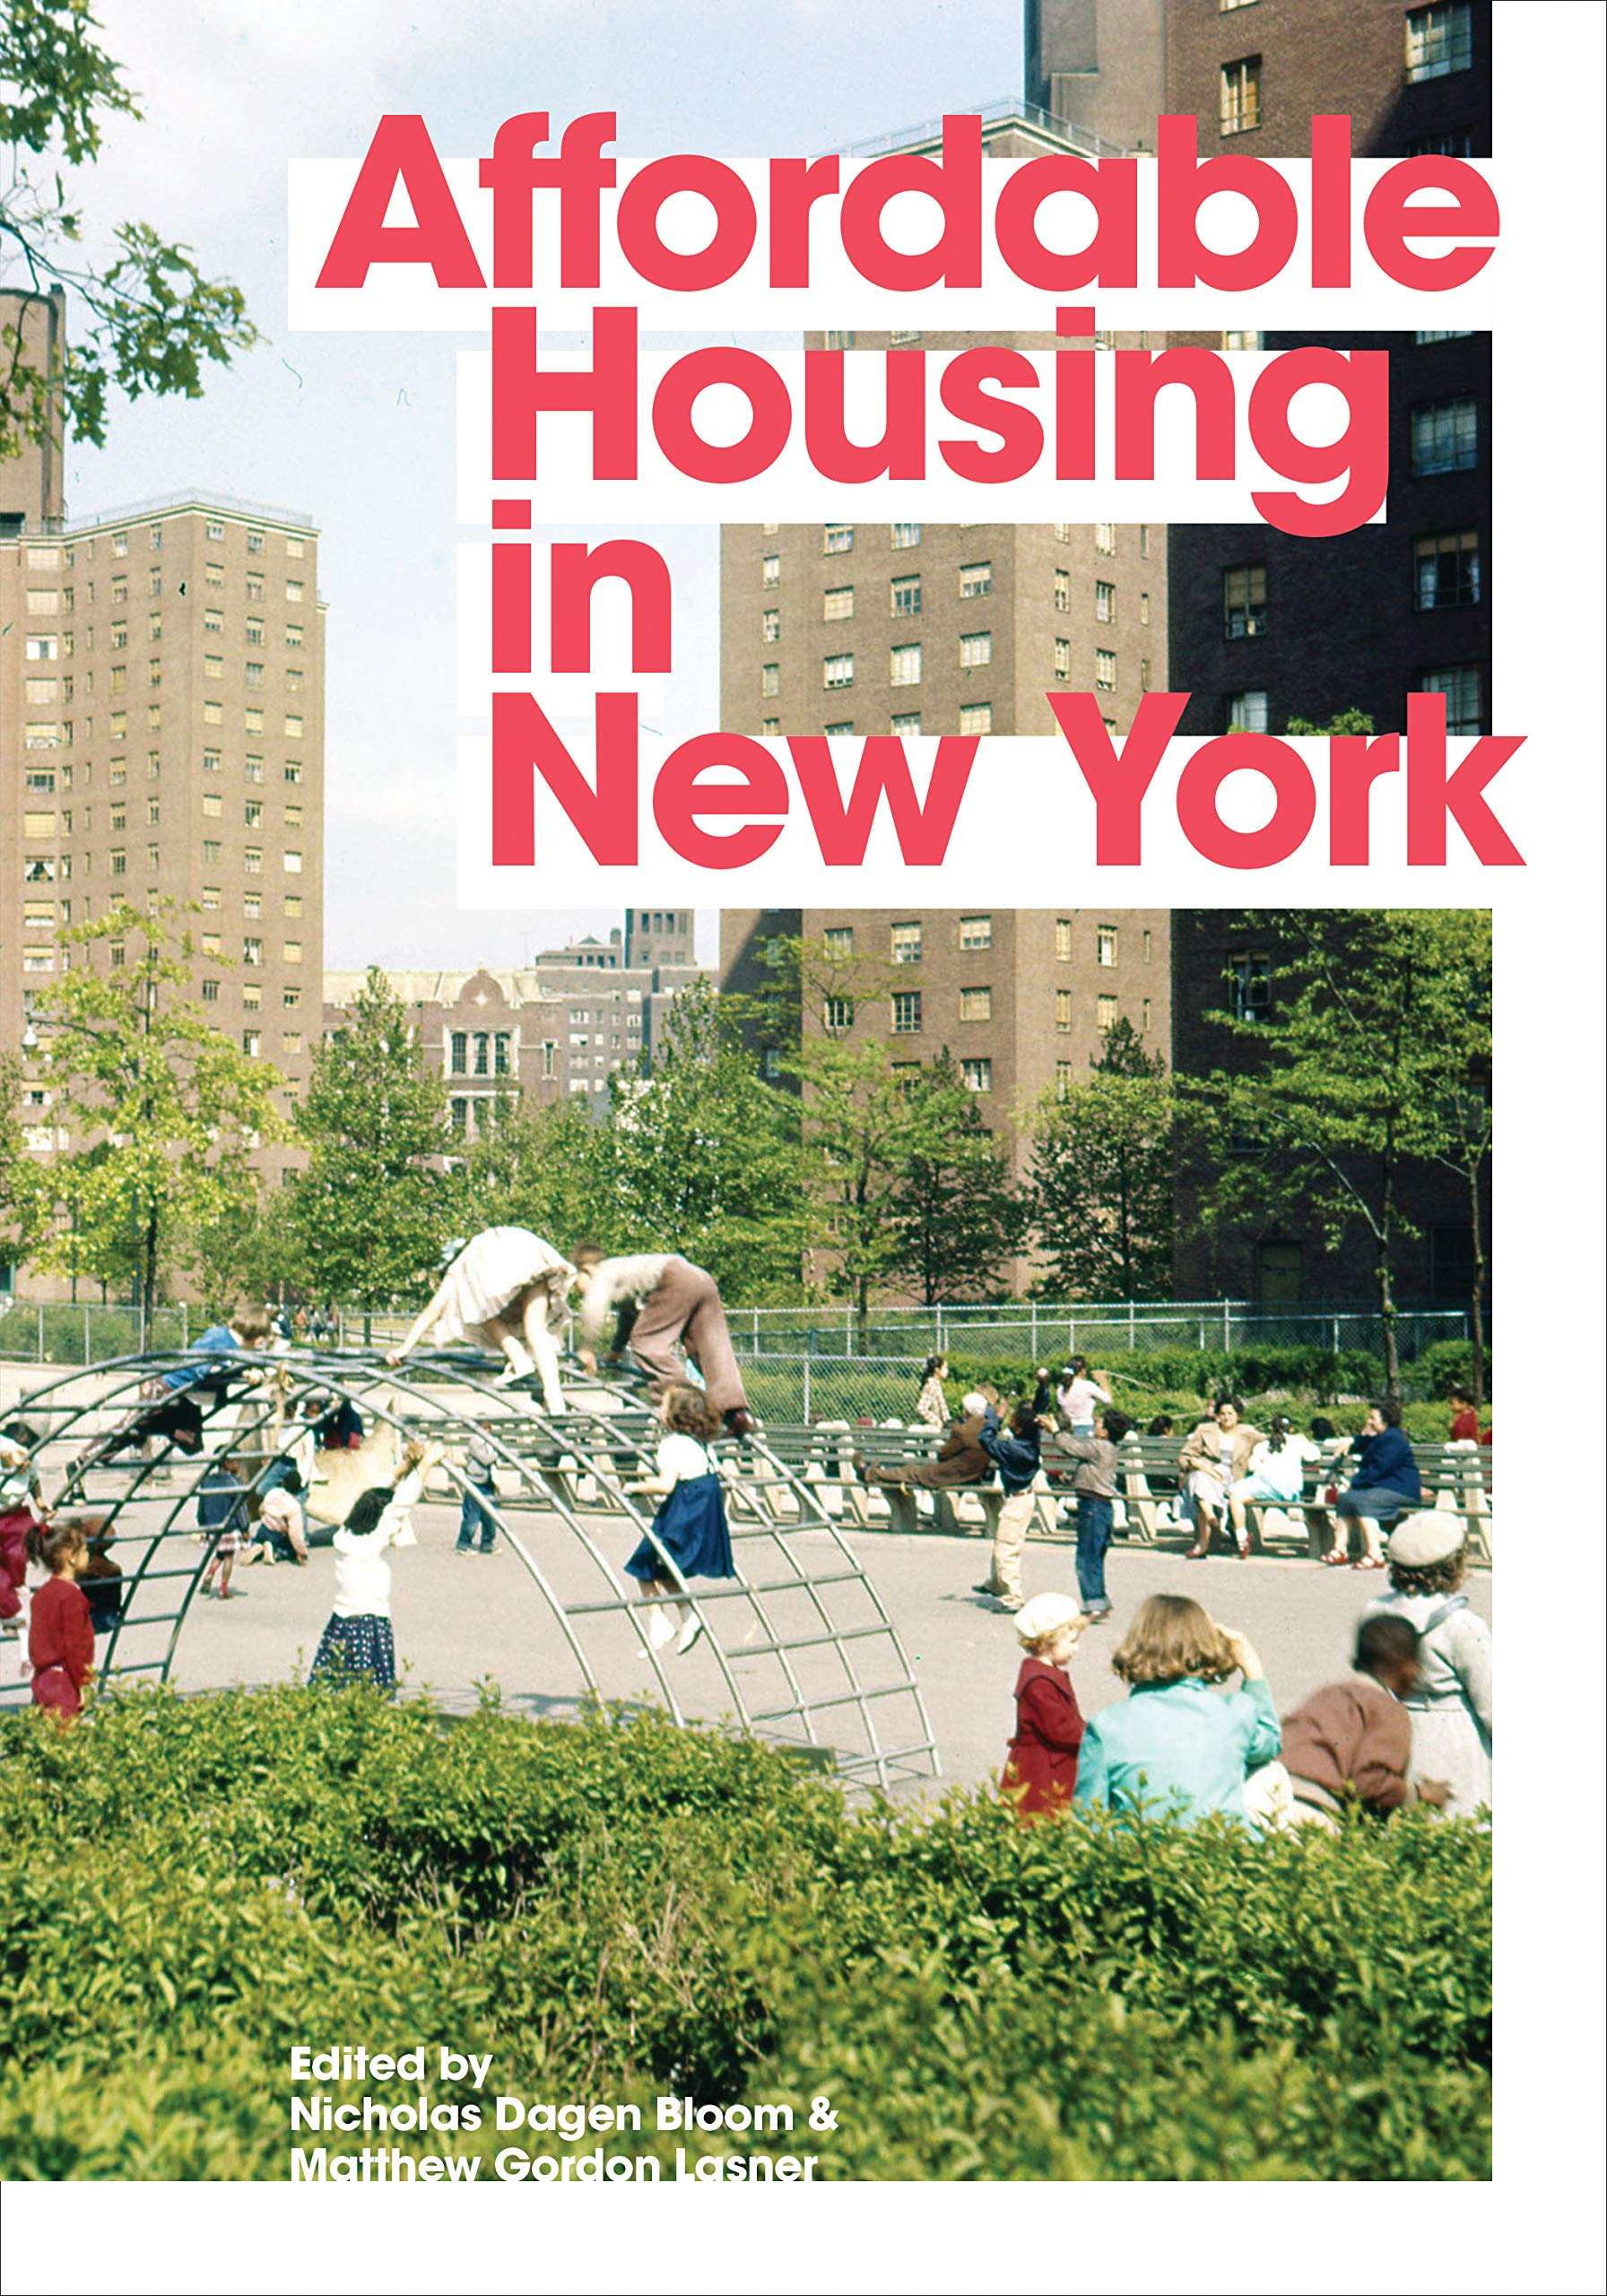 afforable housing in nyc.jpg